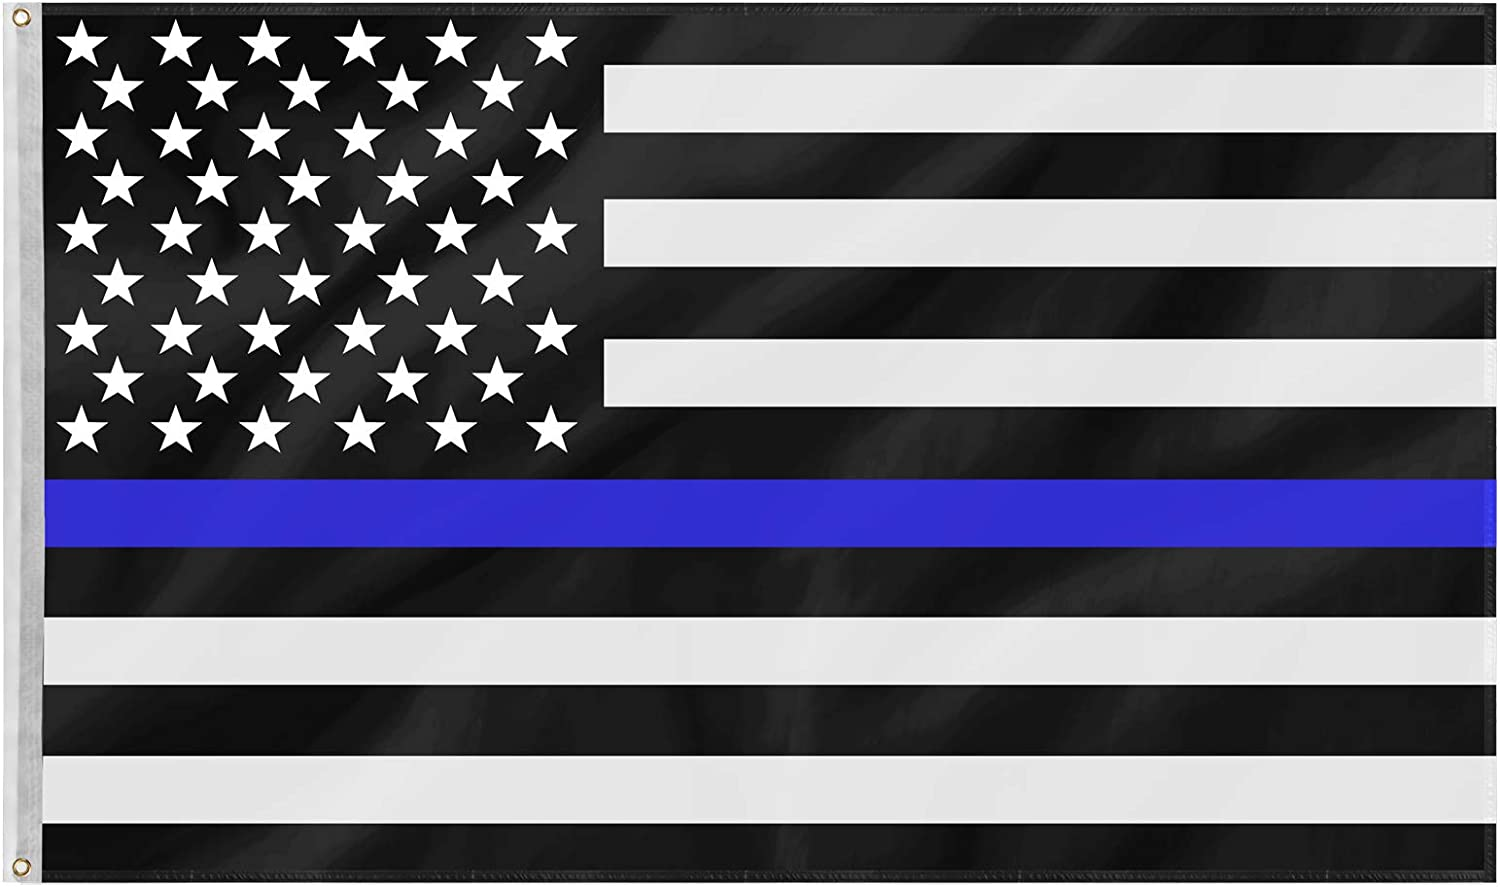 PACETAP Thin Blue Line Police Flags - 3x5 ft Blue Stripe American Matter Police Flags - American Law Enforcement Flag-Honoring Law Enforcement Officers Flags Polyester with Brass Grommets